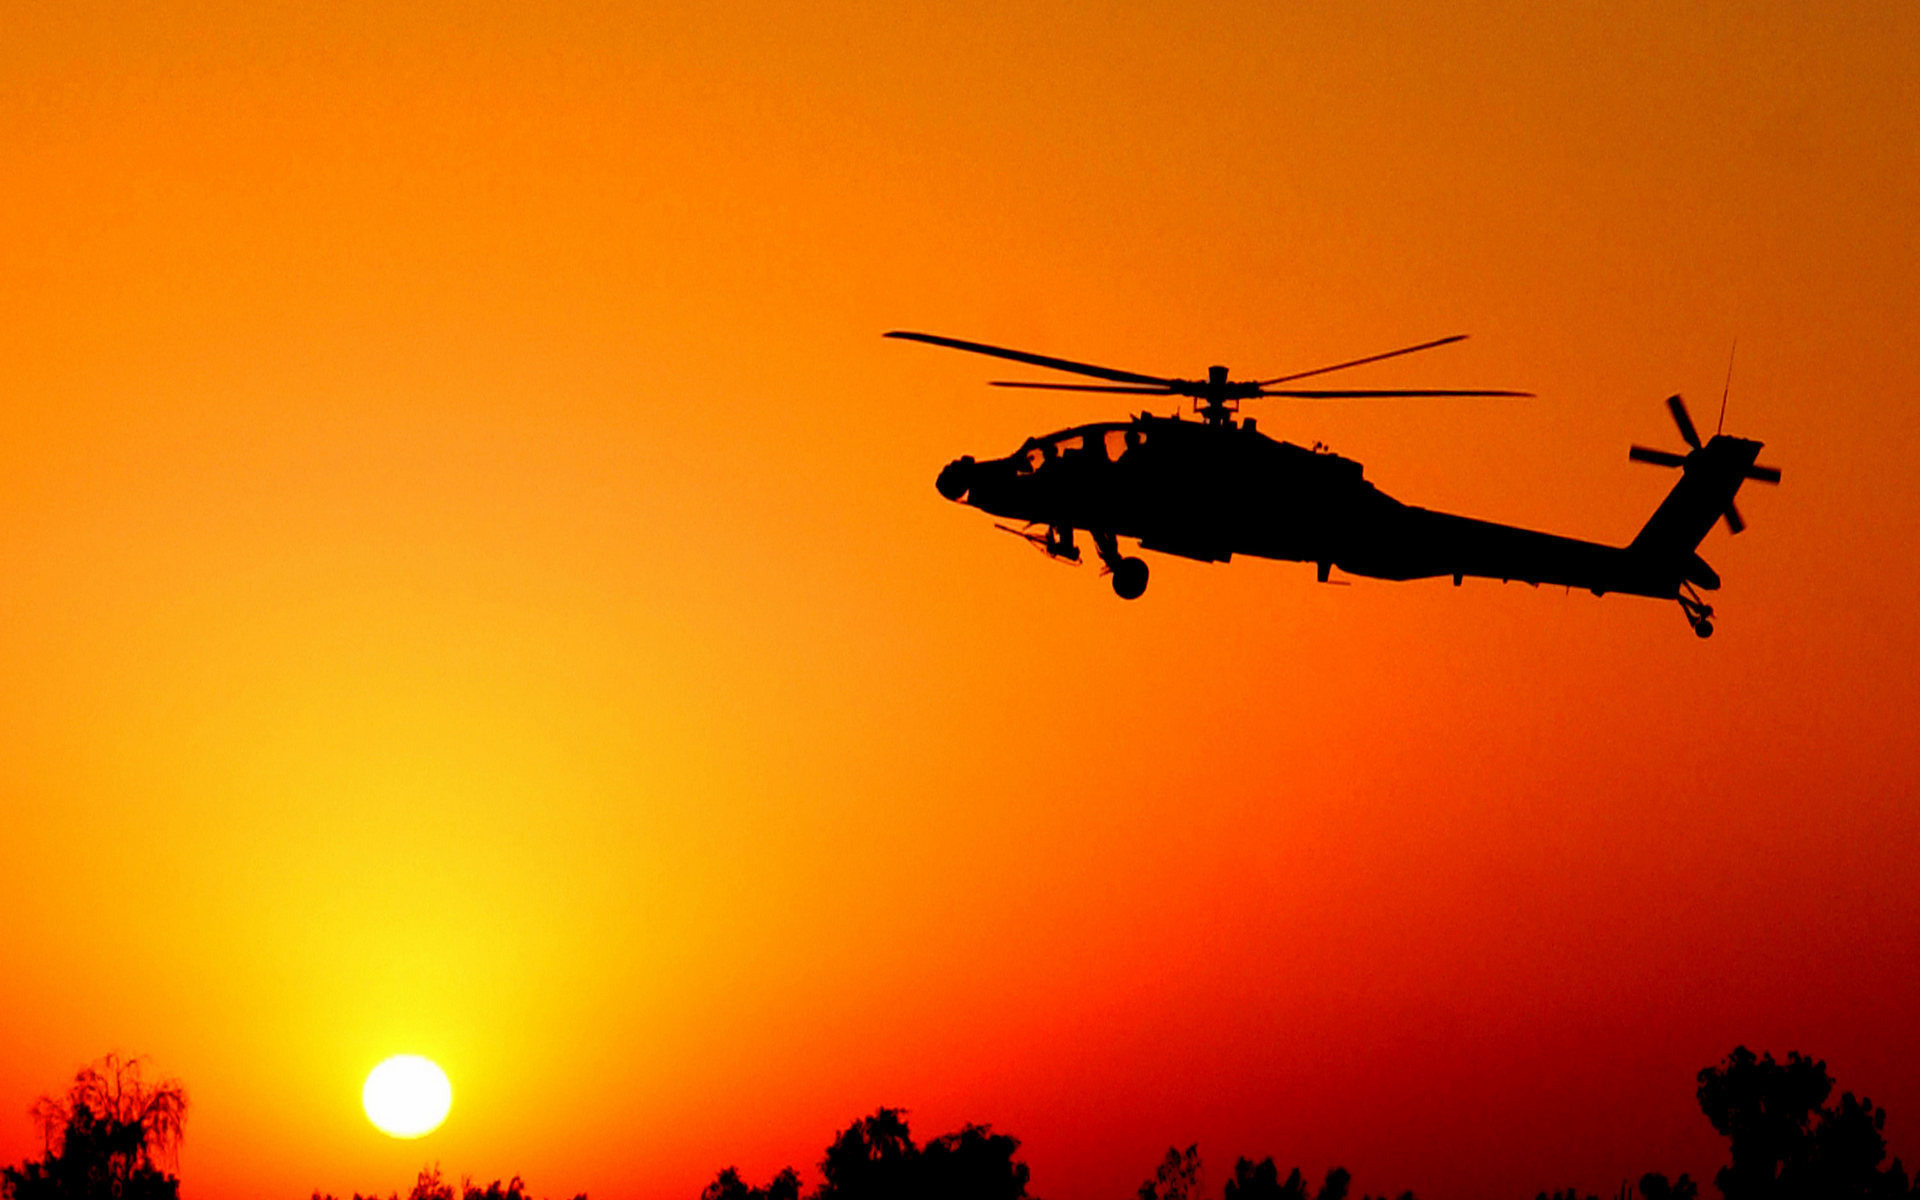 Wallpaper helicopter silhouette sunset Camp Taji Iraq Boeing AH 1920x1200